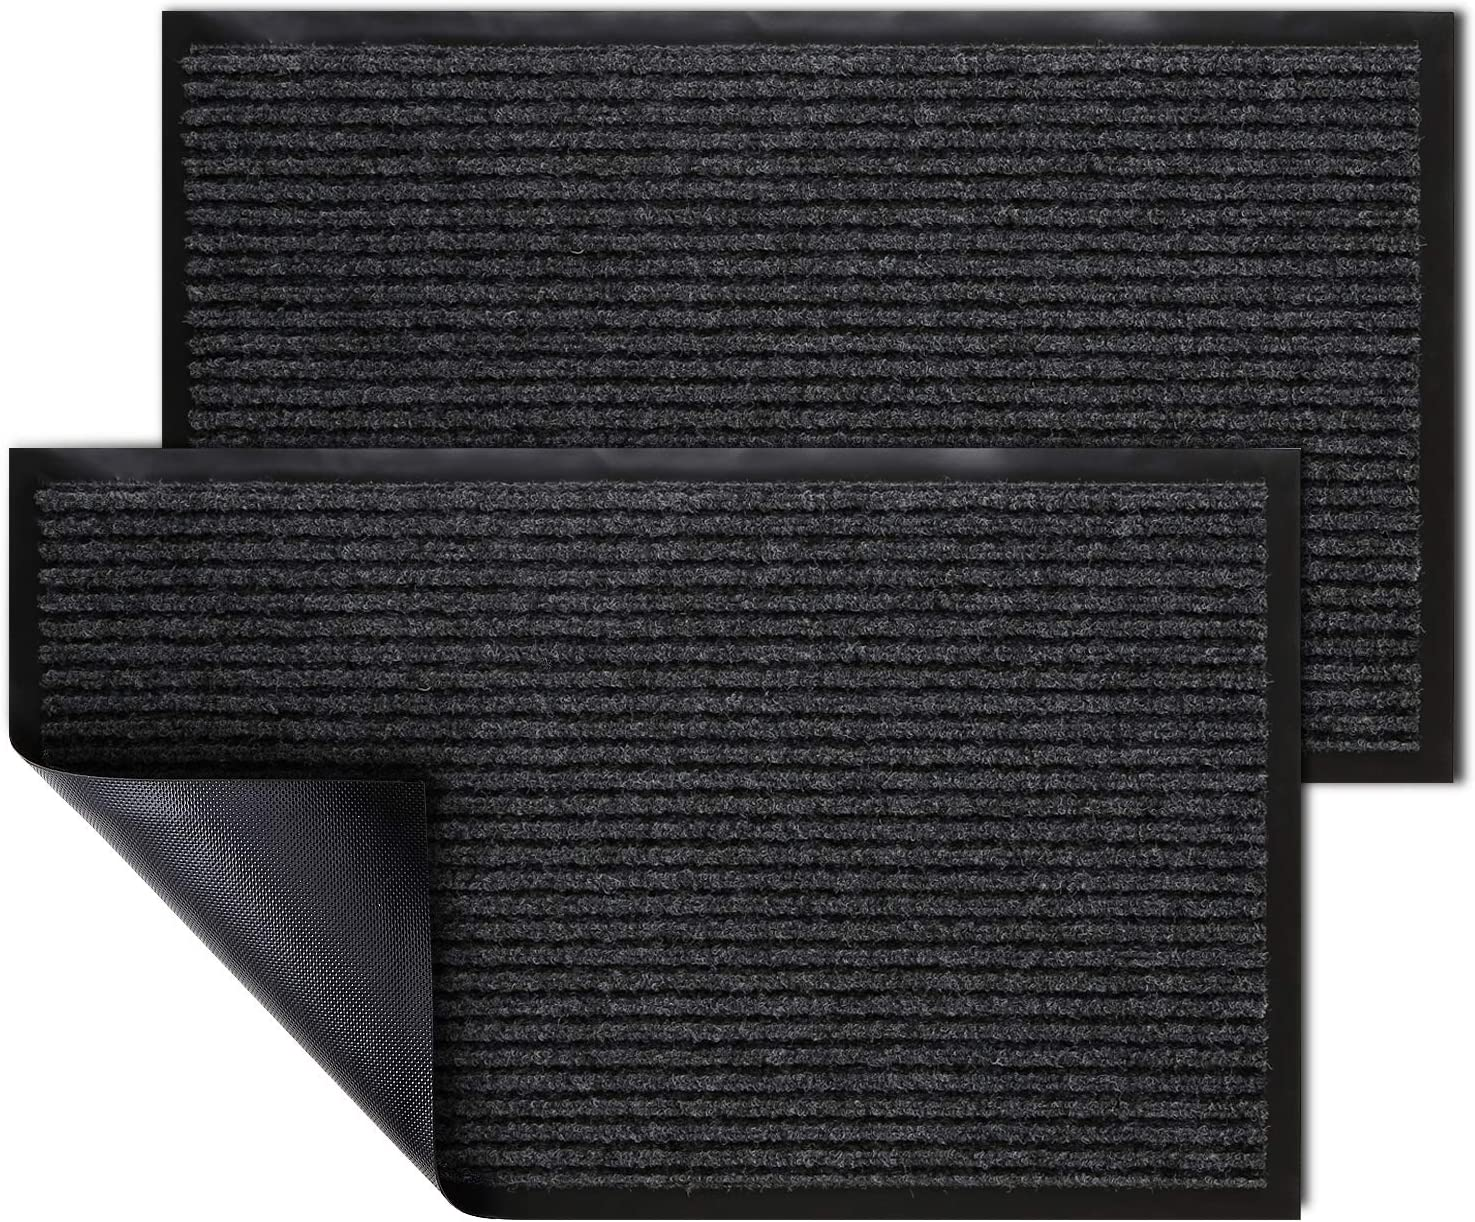 "KMAT 2 Pack Door Mat Outdoor Indoor, Waterproof Anti-Slip Durable Rubber Doormat Low-Profile Design Floor Front Doormat Rugs for Entryway,Patio,Garage,High Traffic Areas(30""x17"",Grey-Black)"